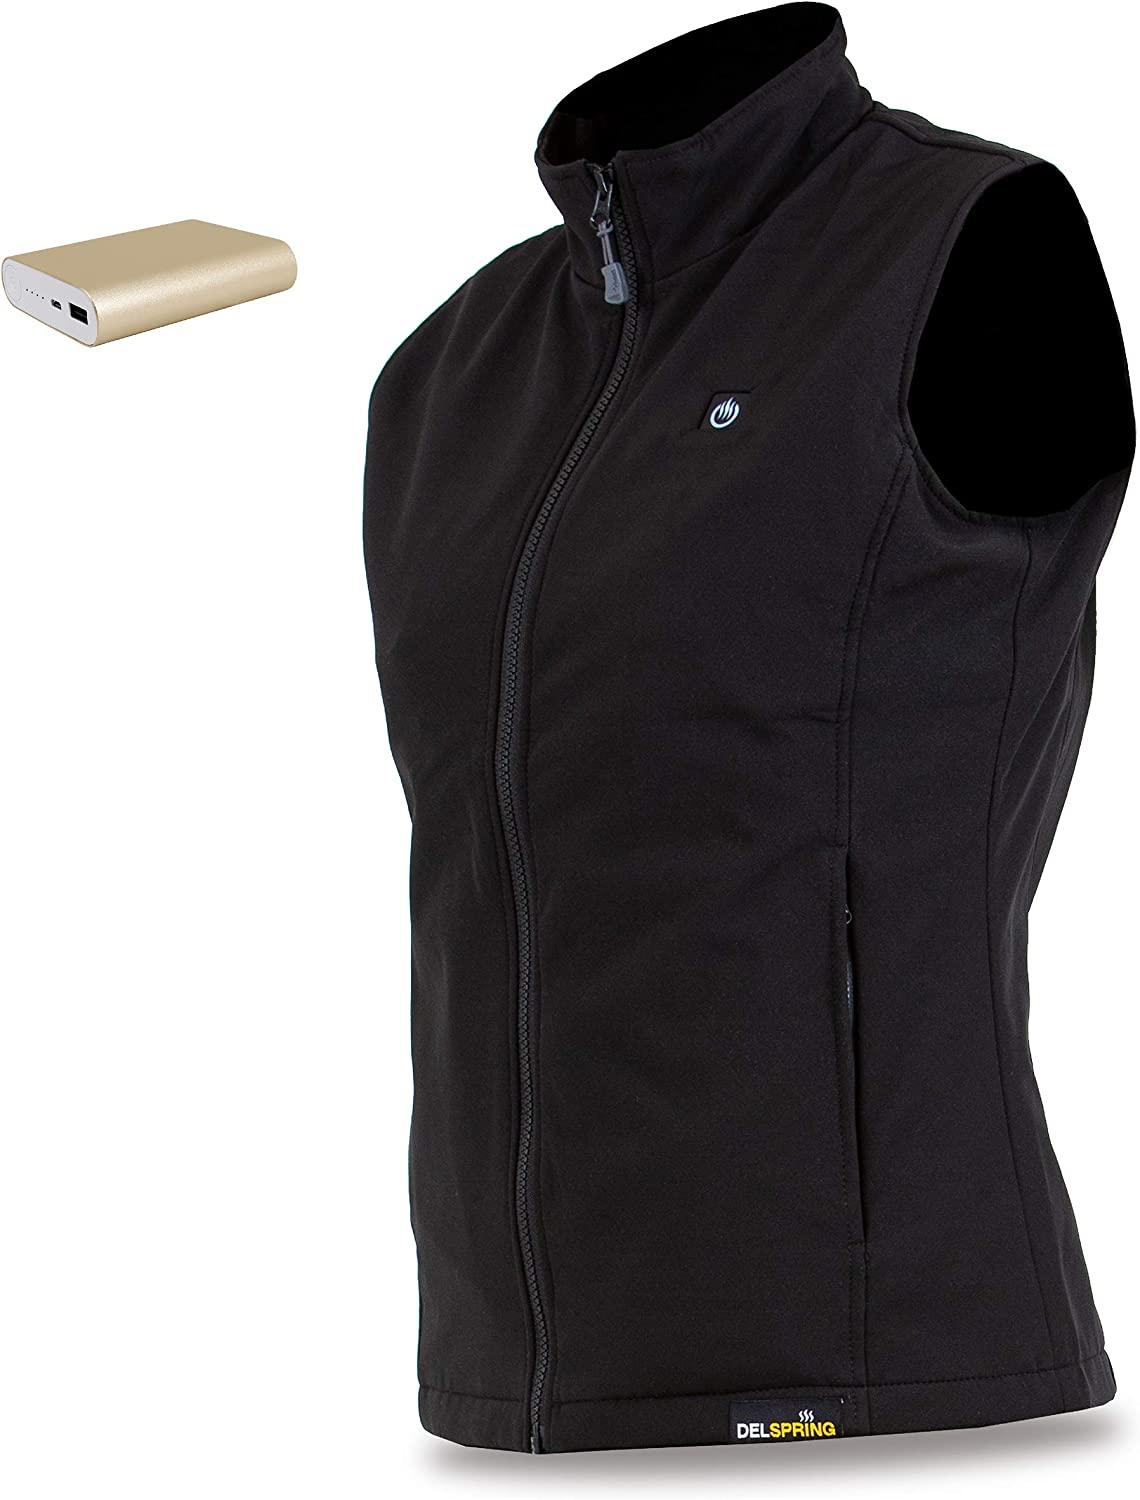 delspring Womens Soft Shell Heated Vest with Battery 12 Hour Windproof Heated Vest for Women